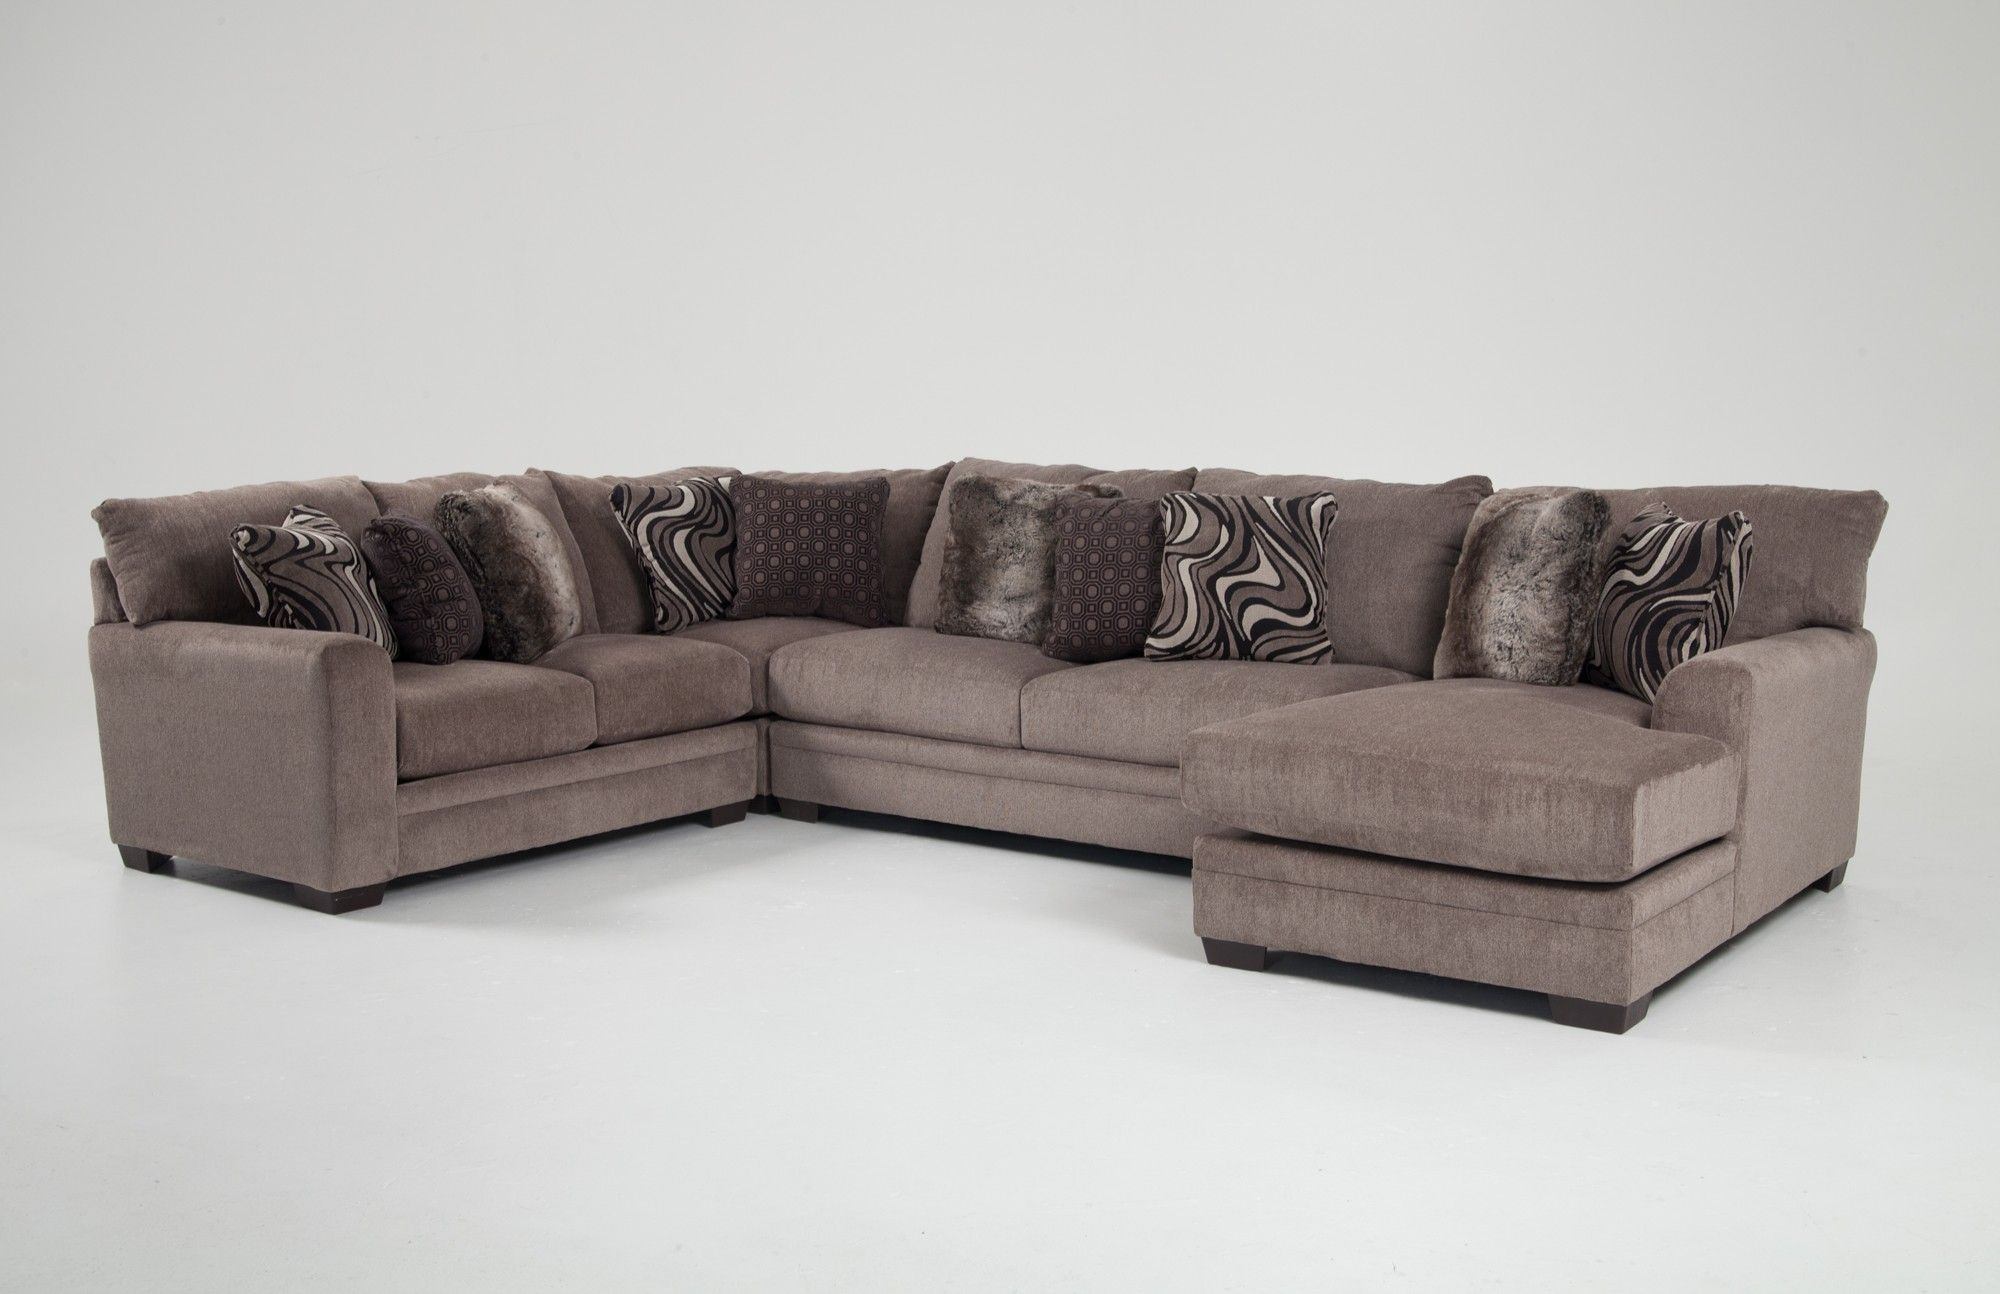 Luxe 4 Piece Left Arm Facing Sectional With Chaise Bobs Com Bobs Furniture Couch Furniture Bobs Furniture Living Room